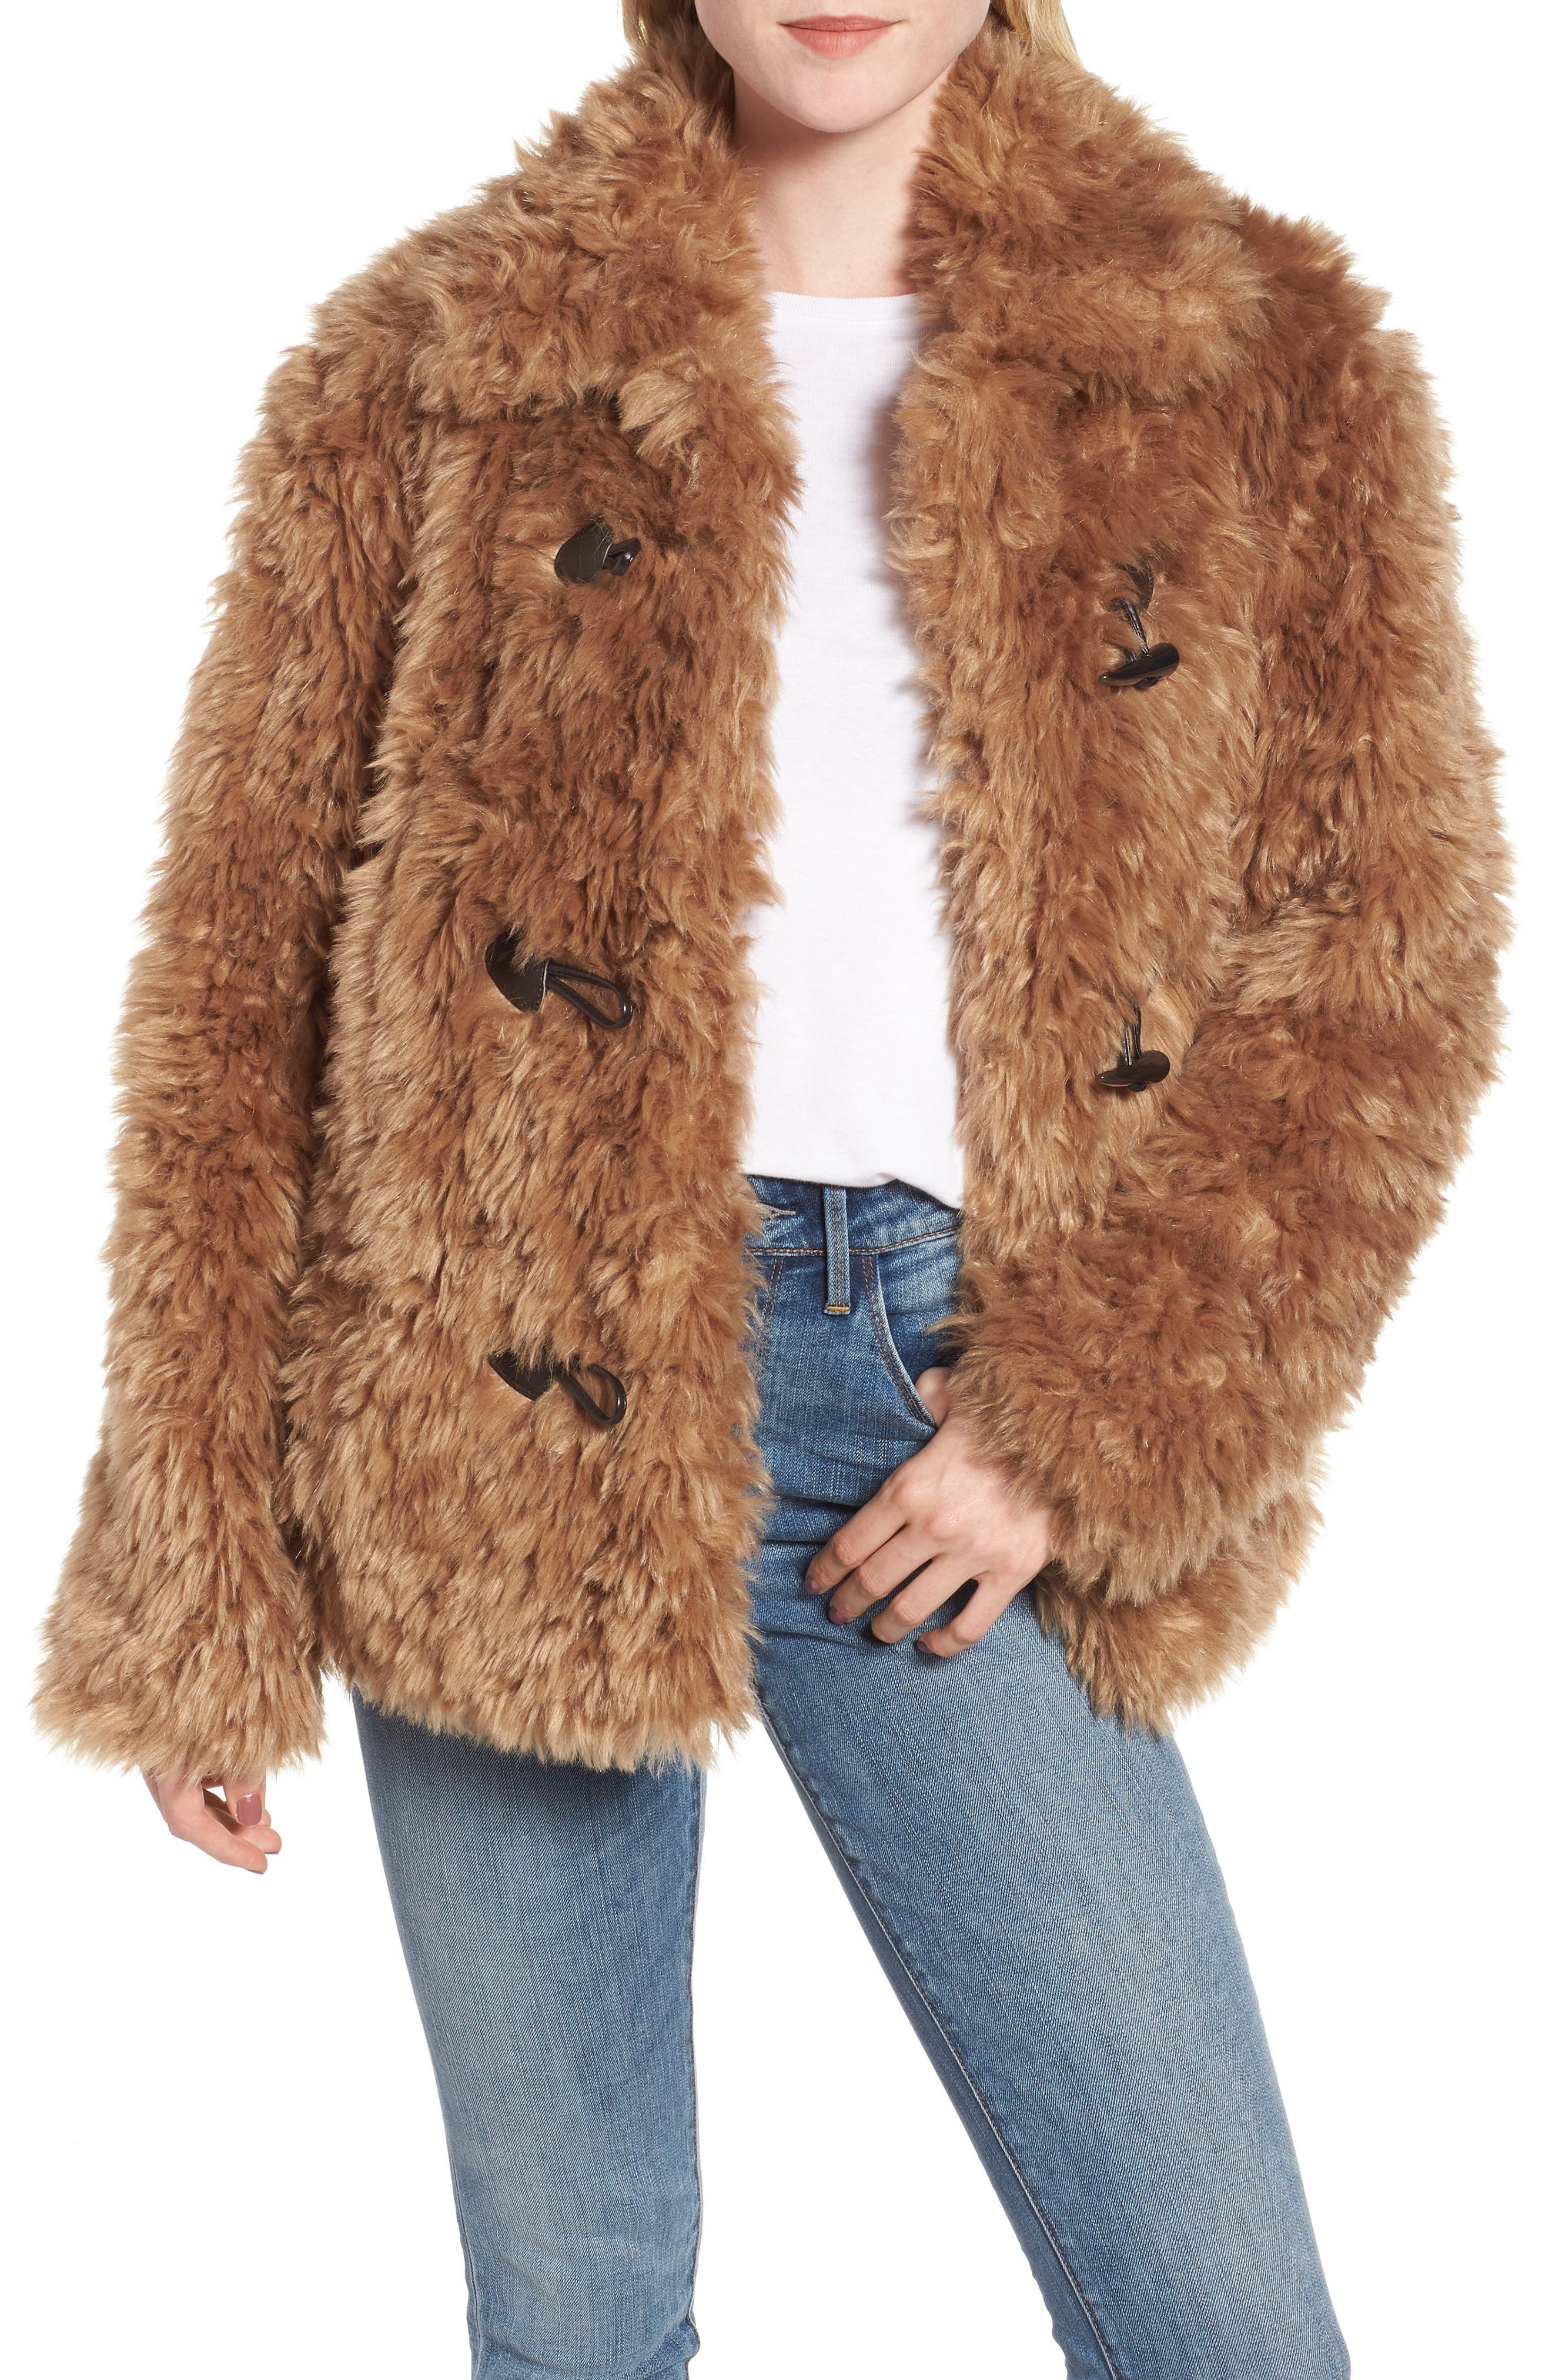 Faux Fur Teddy Coat,                             Main thumbnail 1, color,                             260